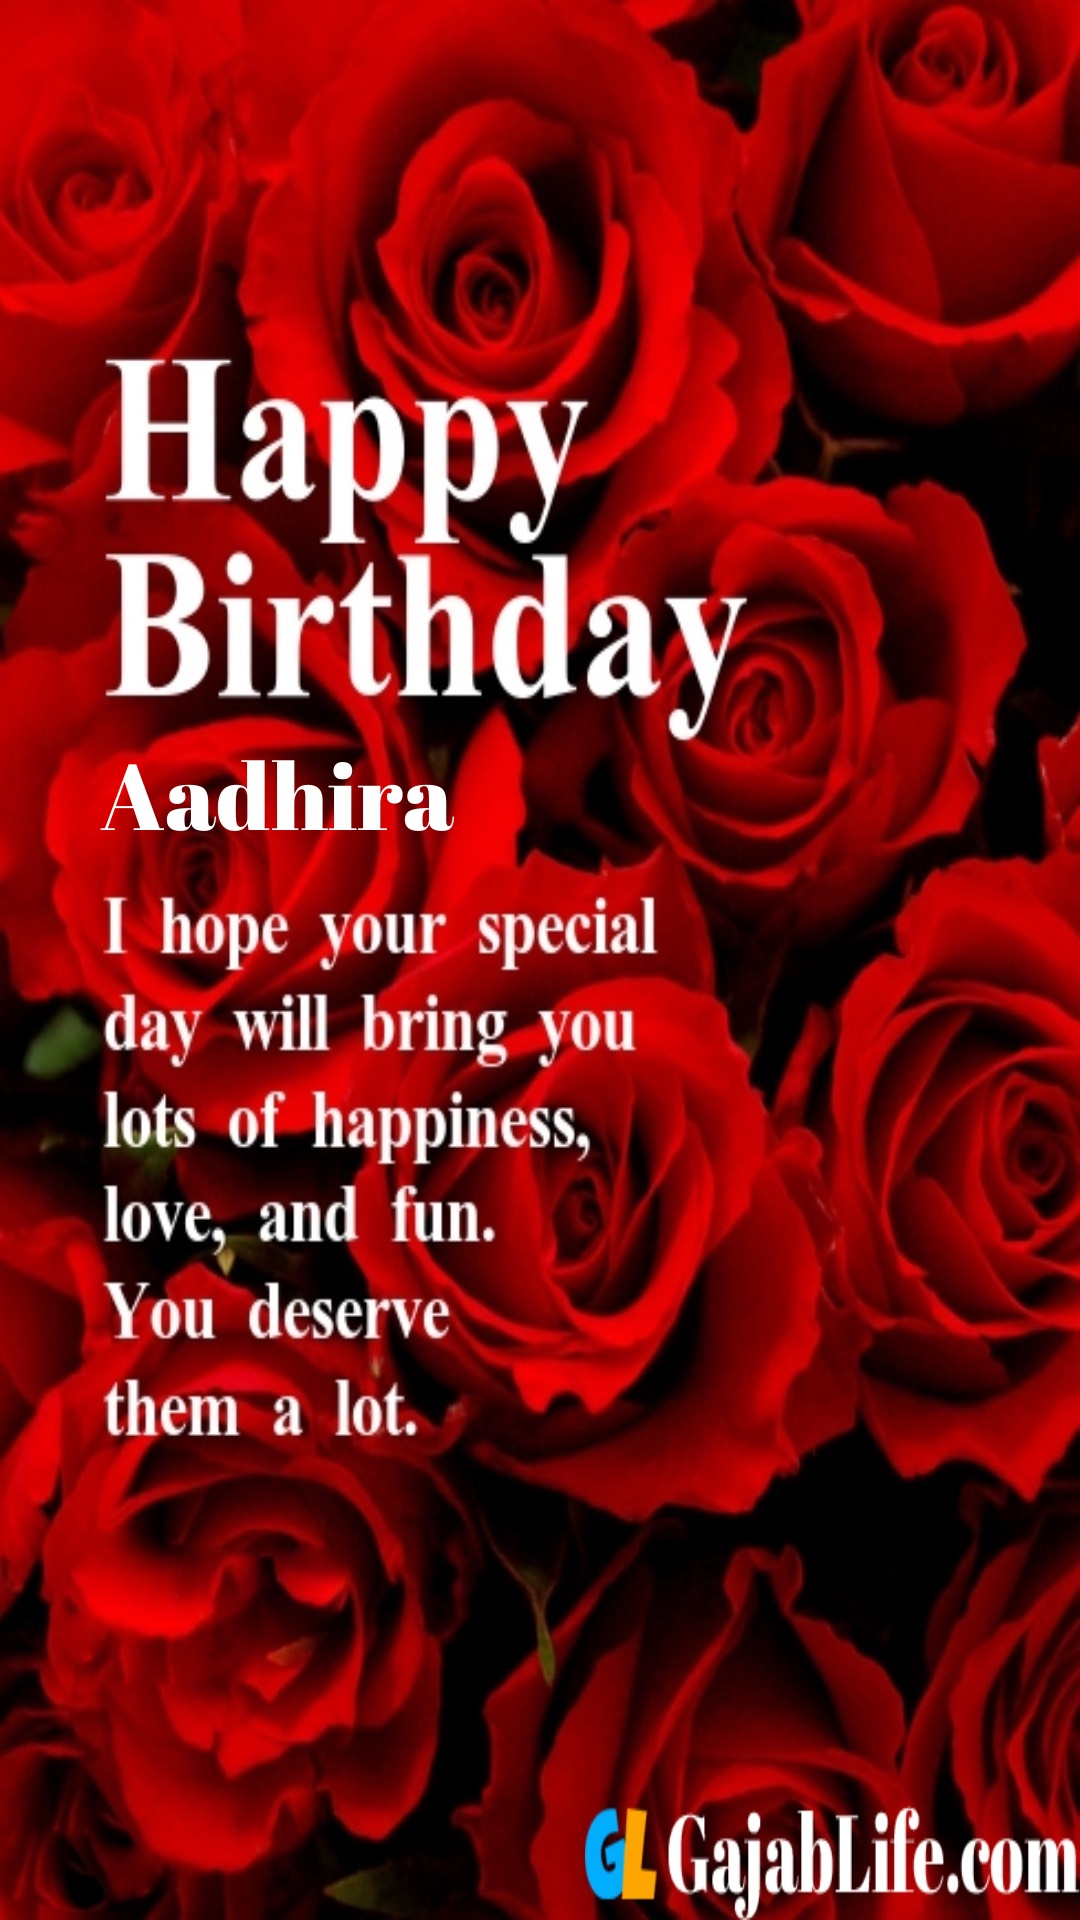 Aadhira birthday greeting card with rose & love